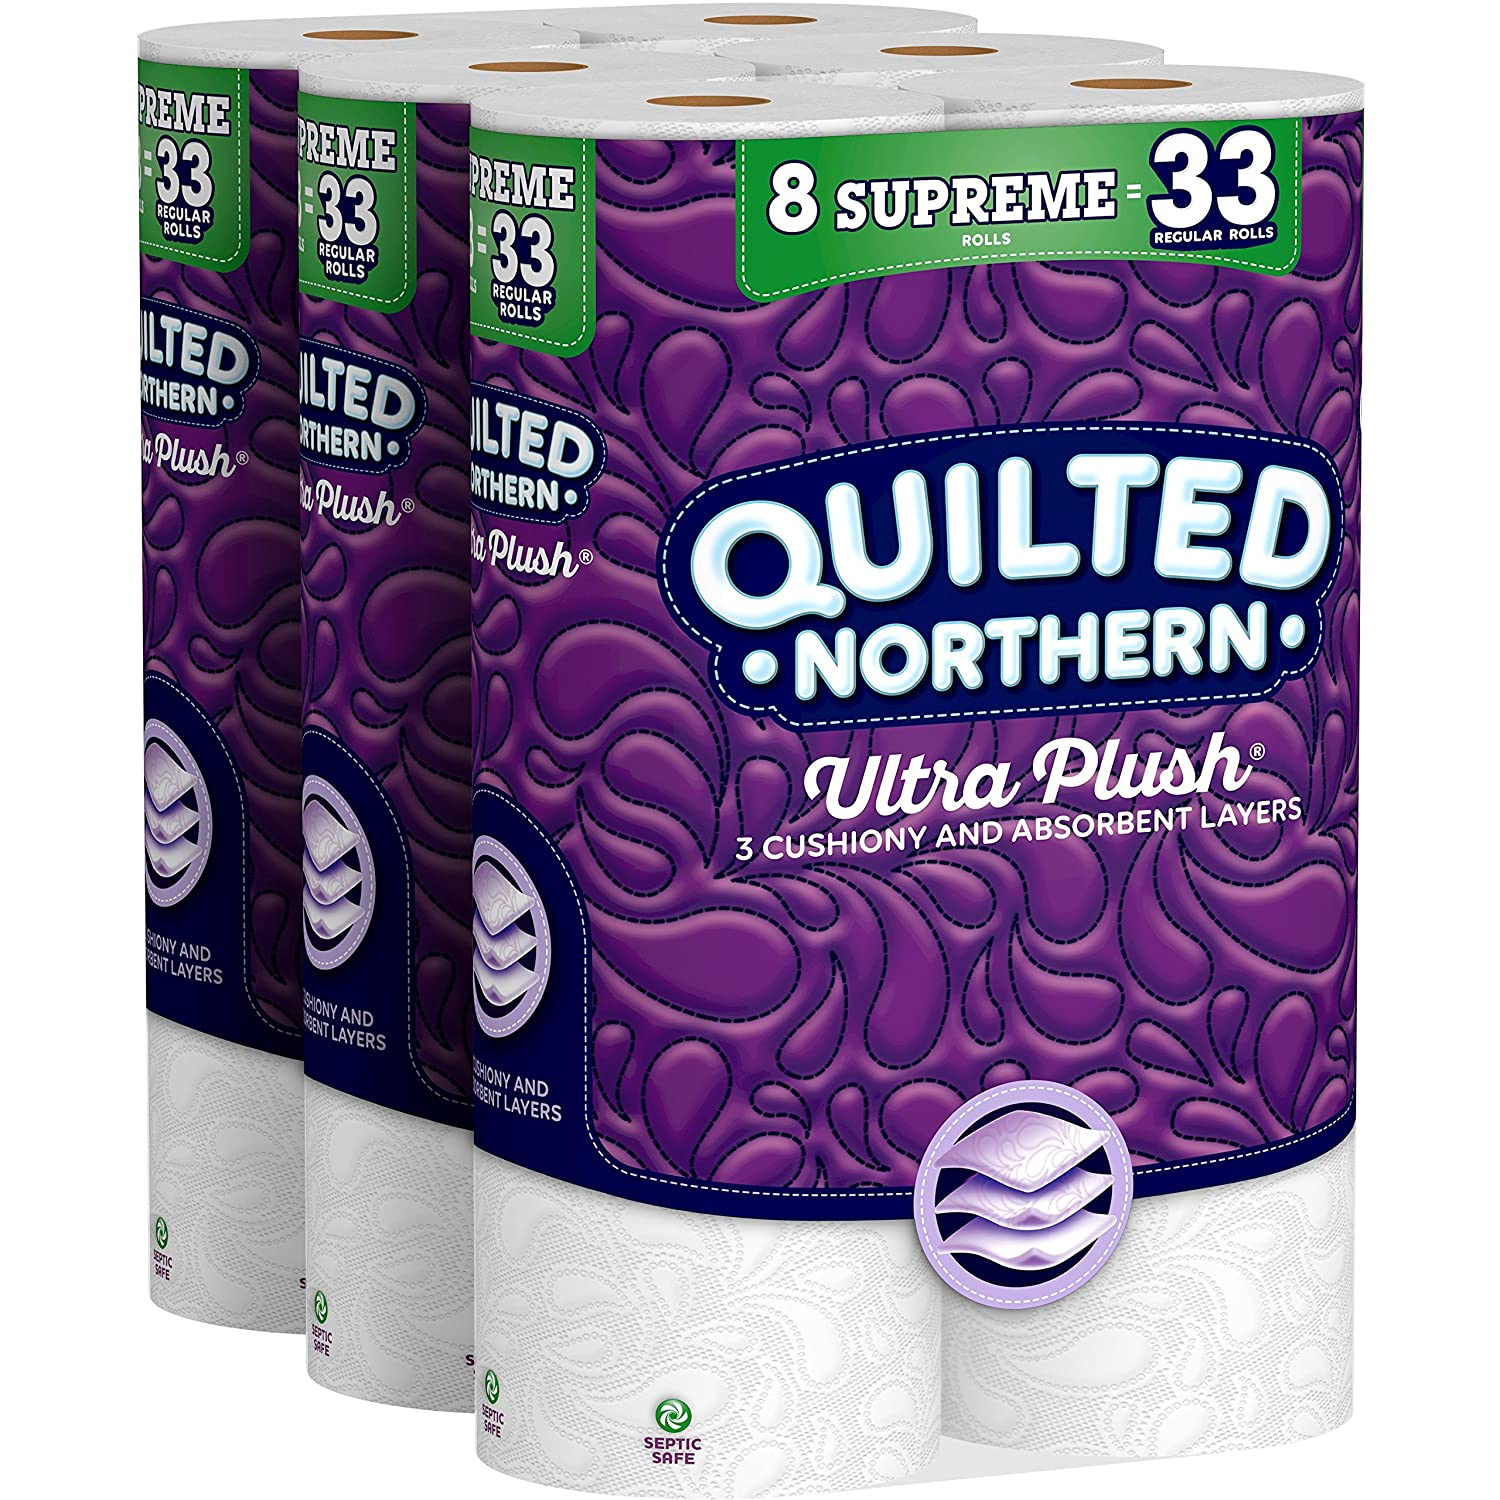 quilted rolls quilt northern ip toilet walmart plush com mega bath fdab tissue paper ultra